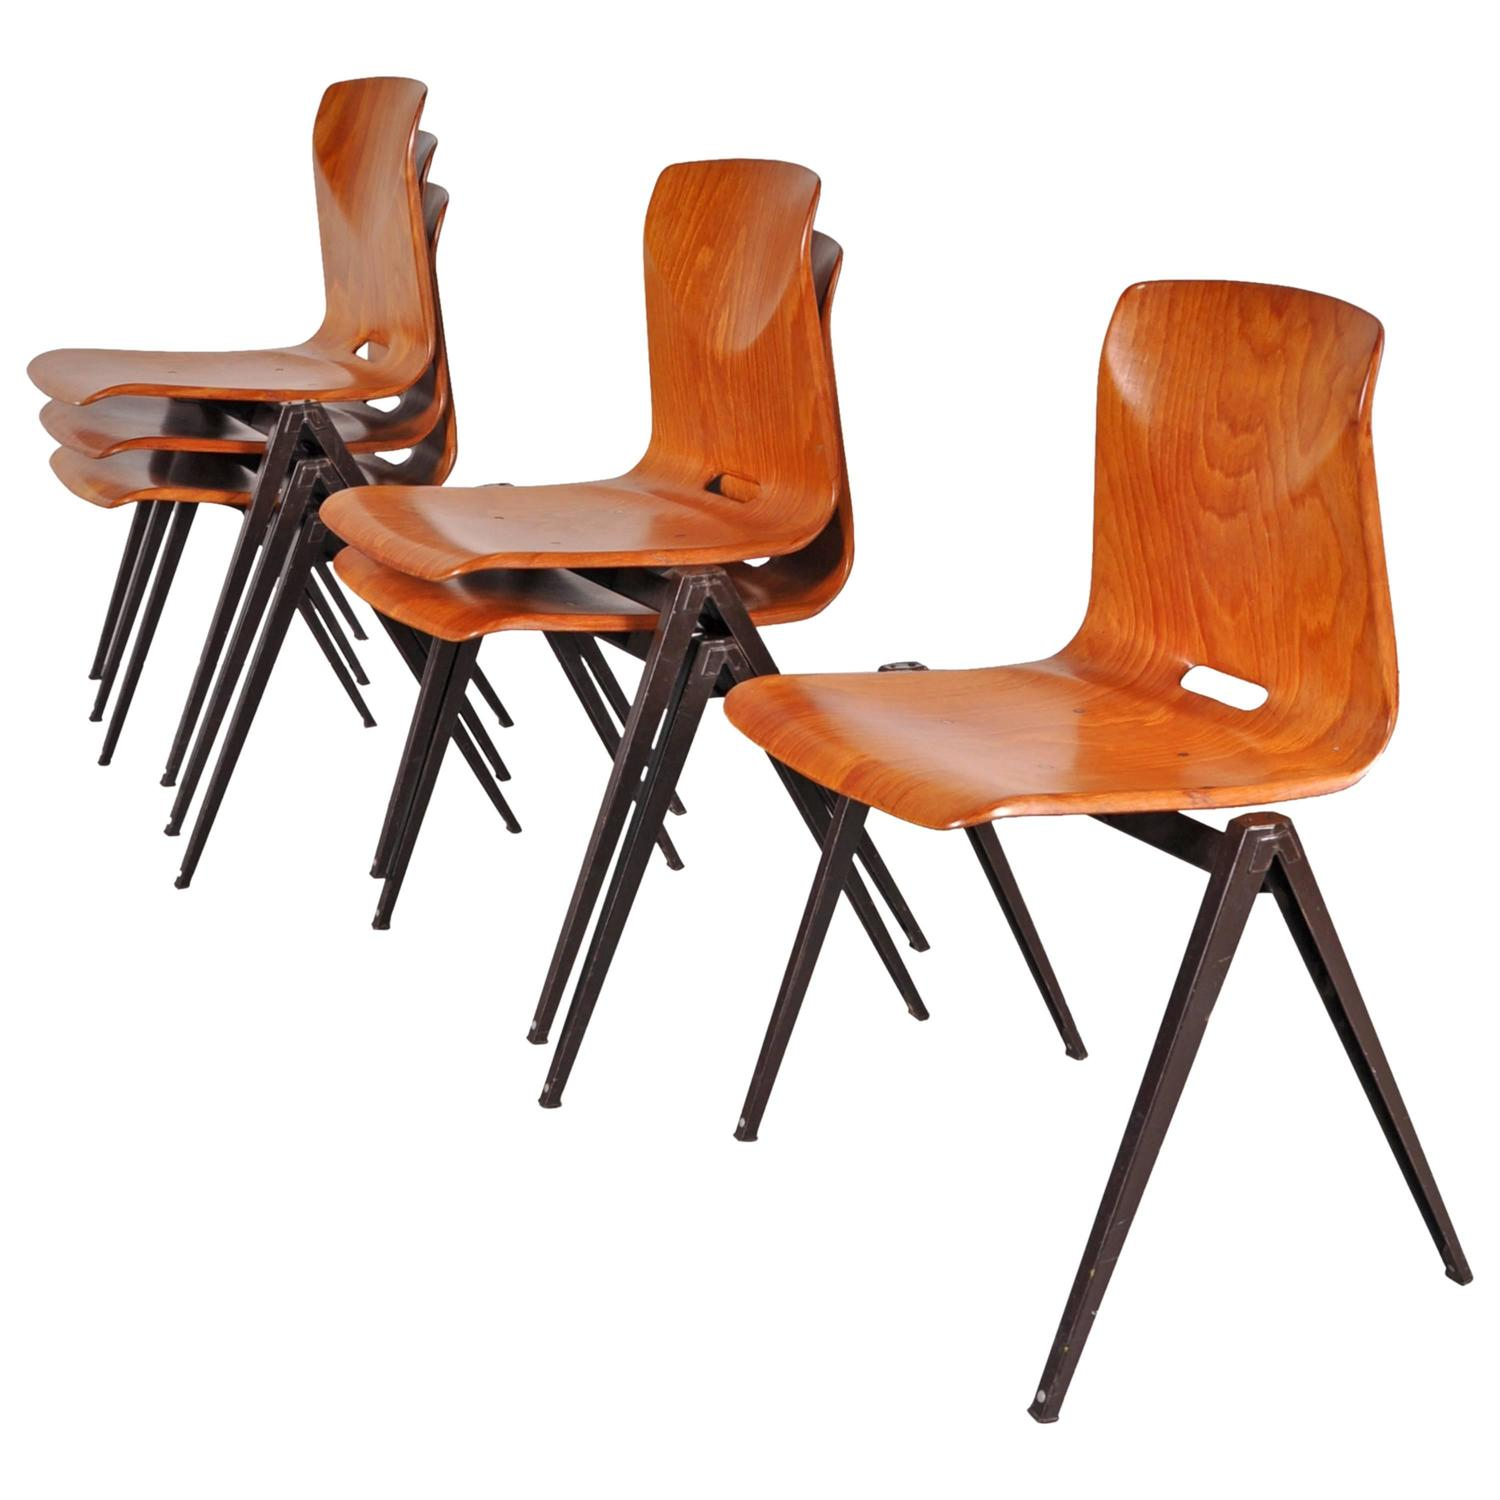 Stock of Galvanitas S22 Stackable Dining Chairs circa 1970